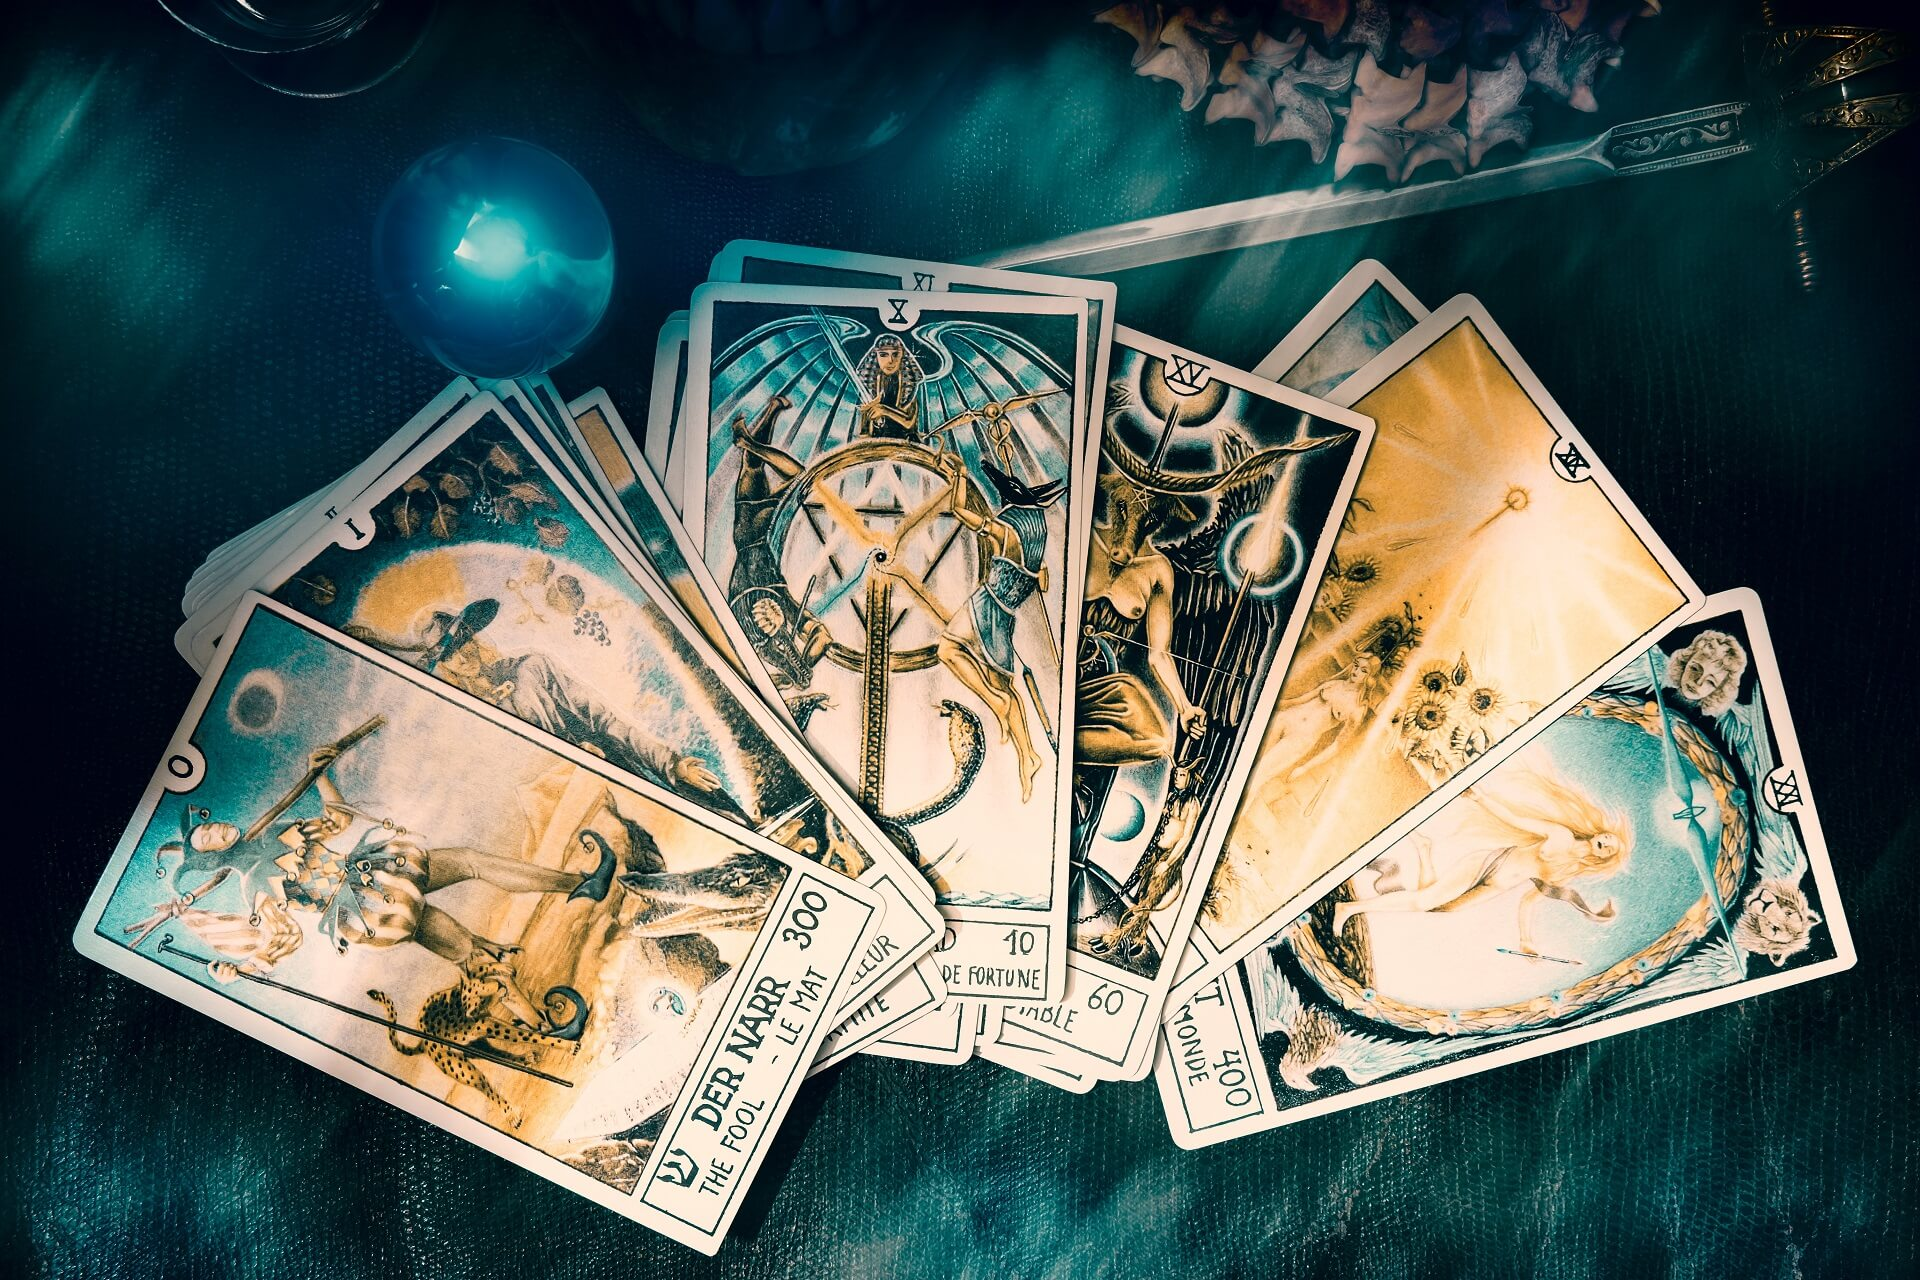 View of tarot card on the table under candlelight